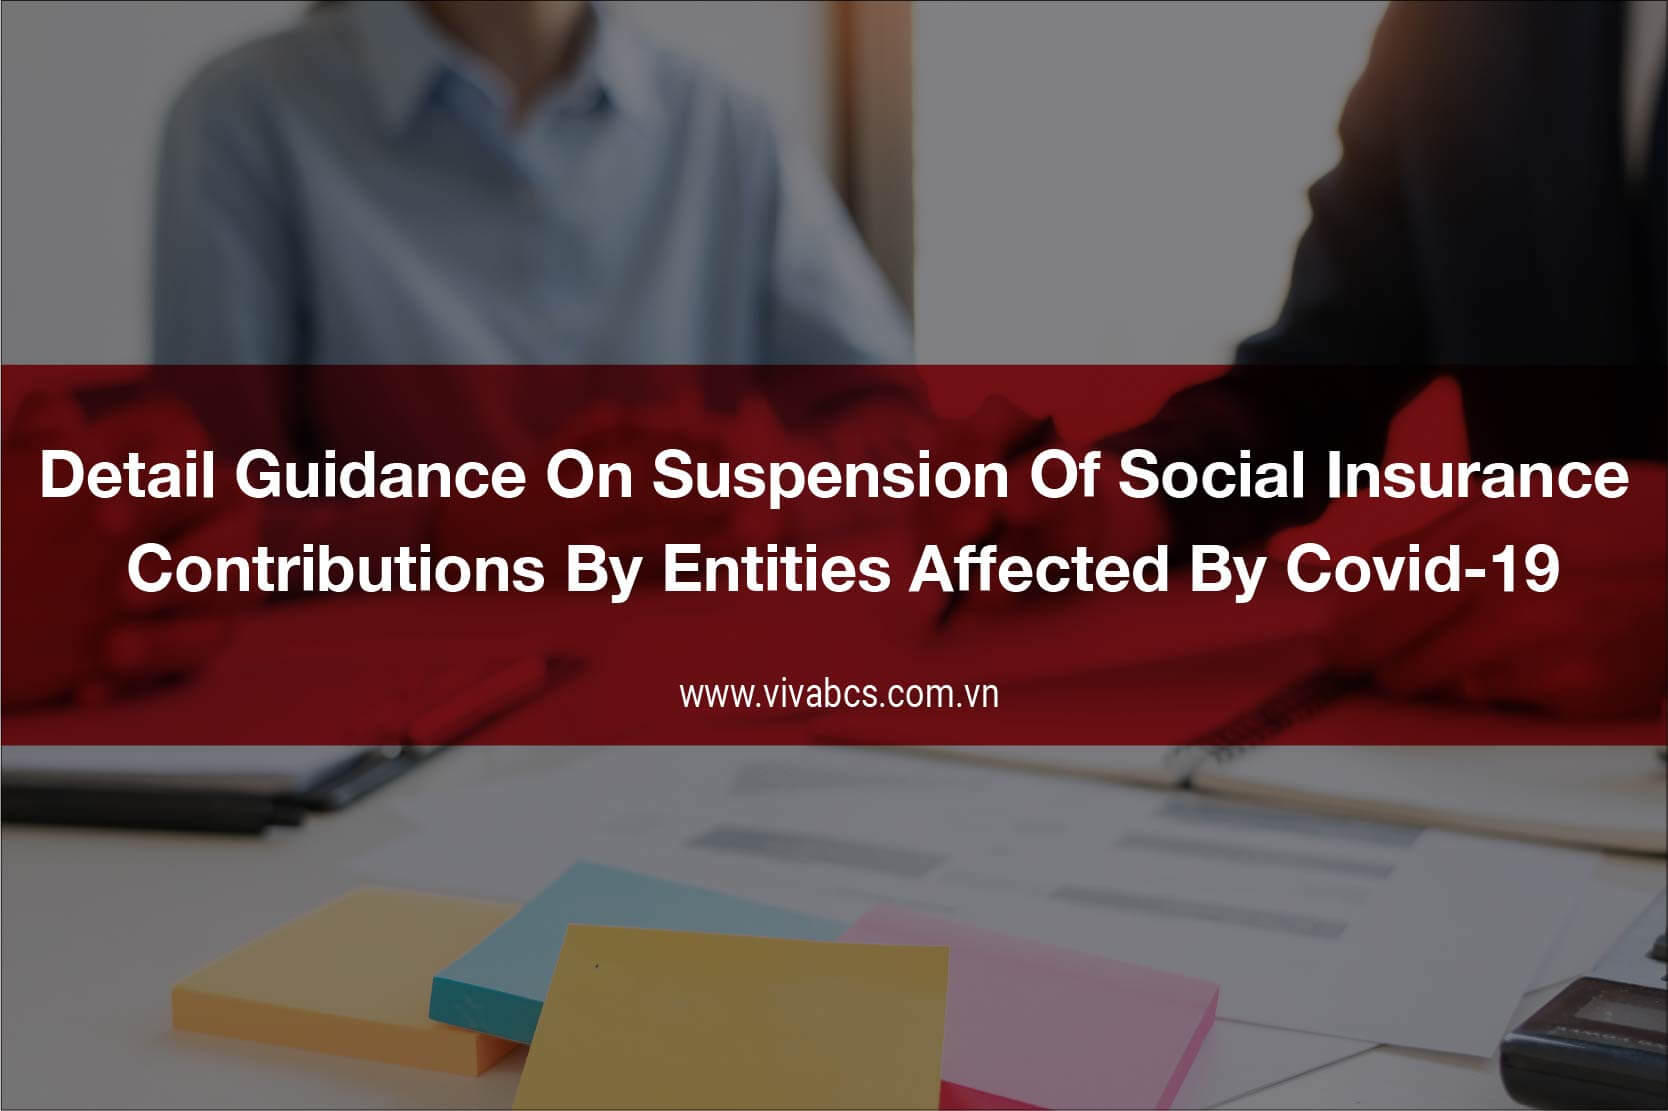 Detail guidance on suspension of social insurance